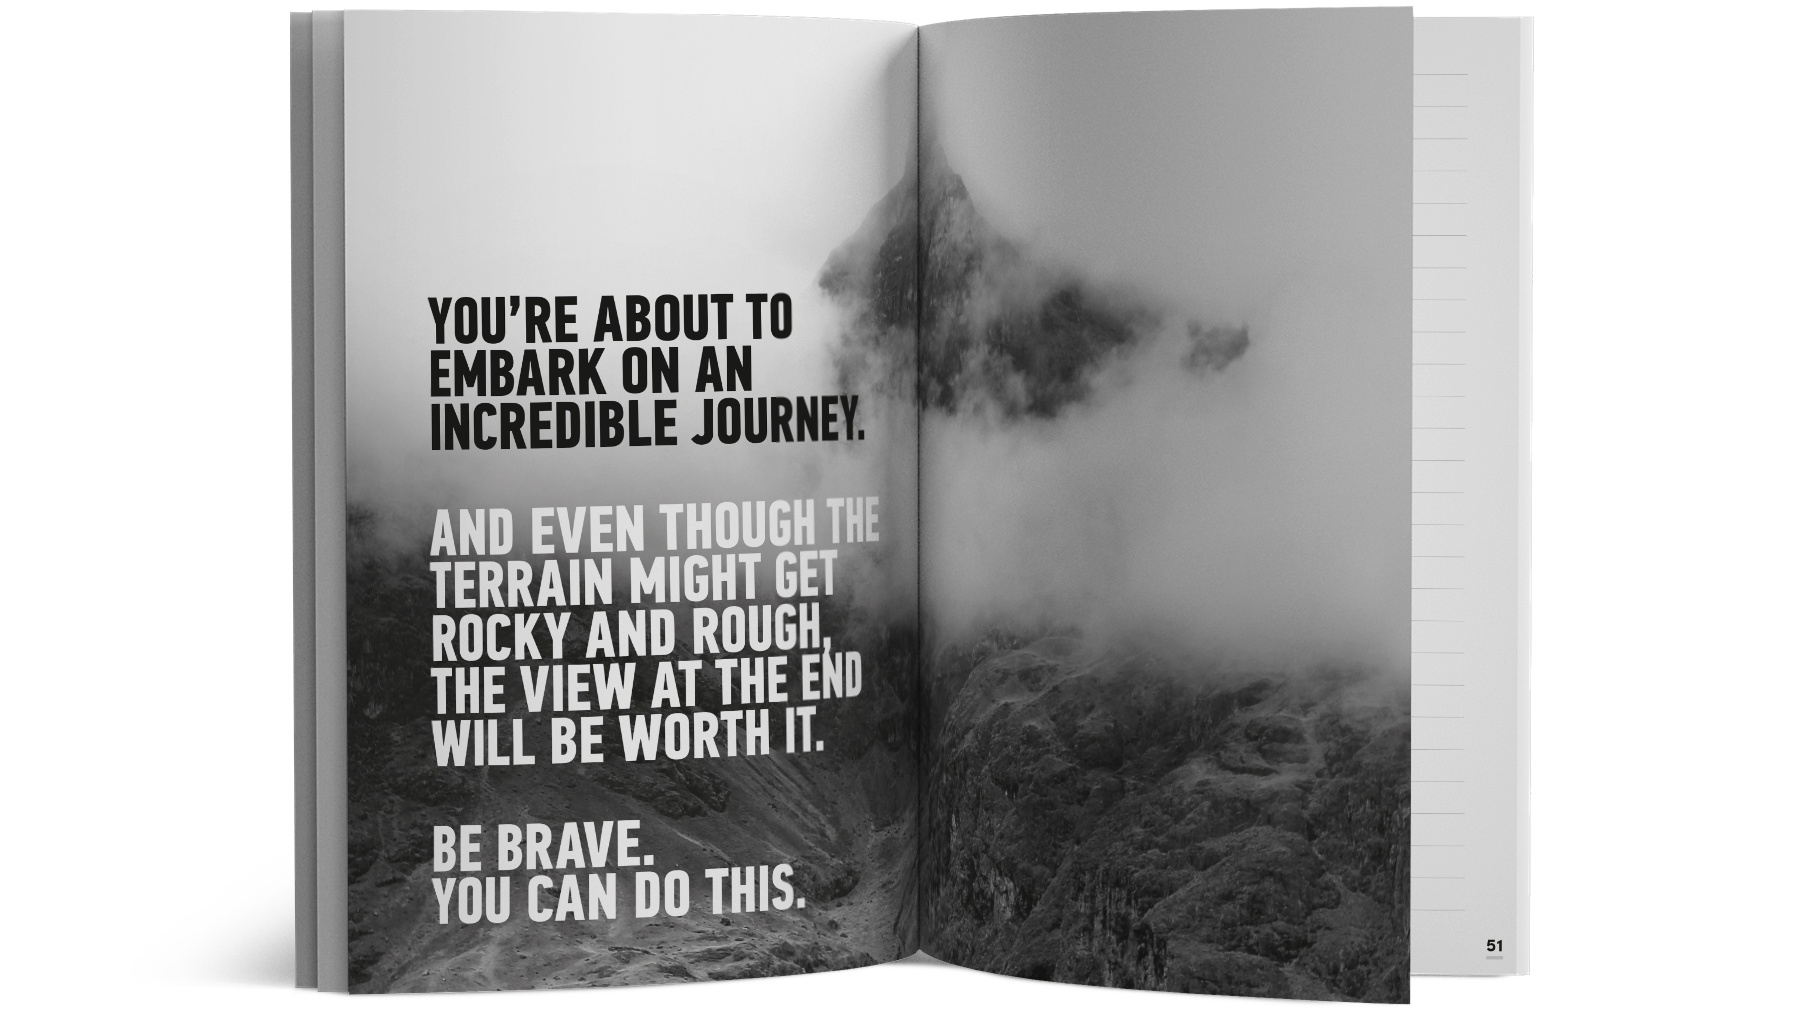 This Book Will Make You Stronger by MindJournal's Ollie Aplin (MindJournal/PA)